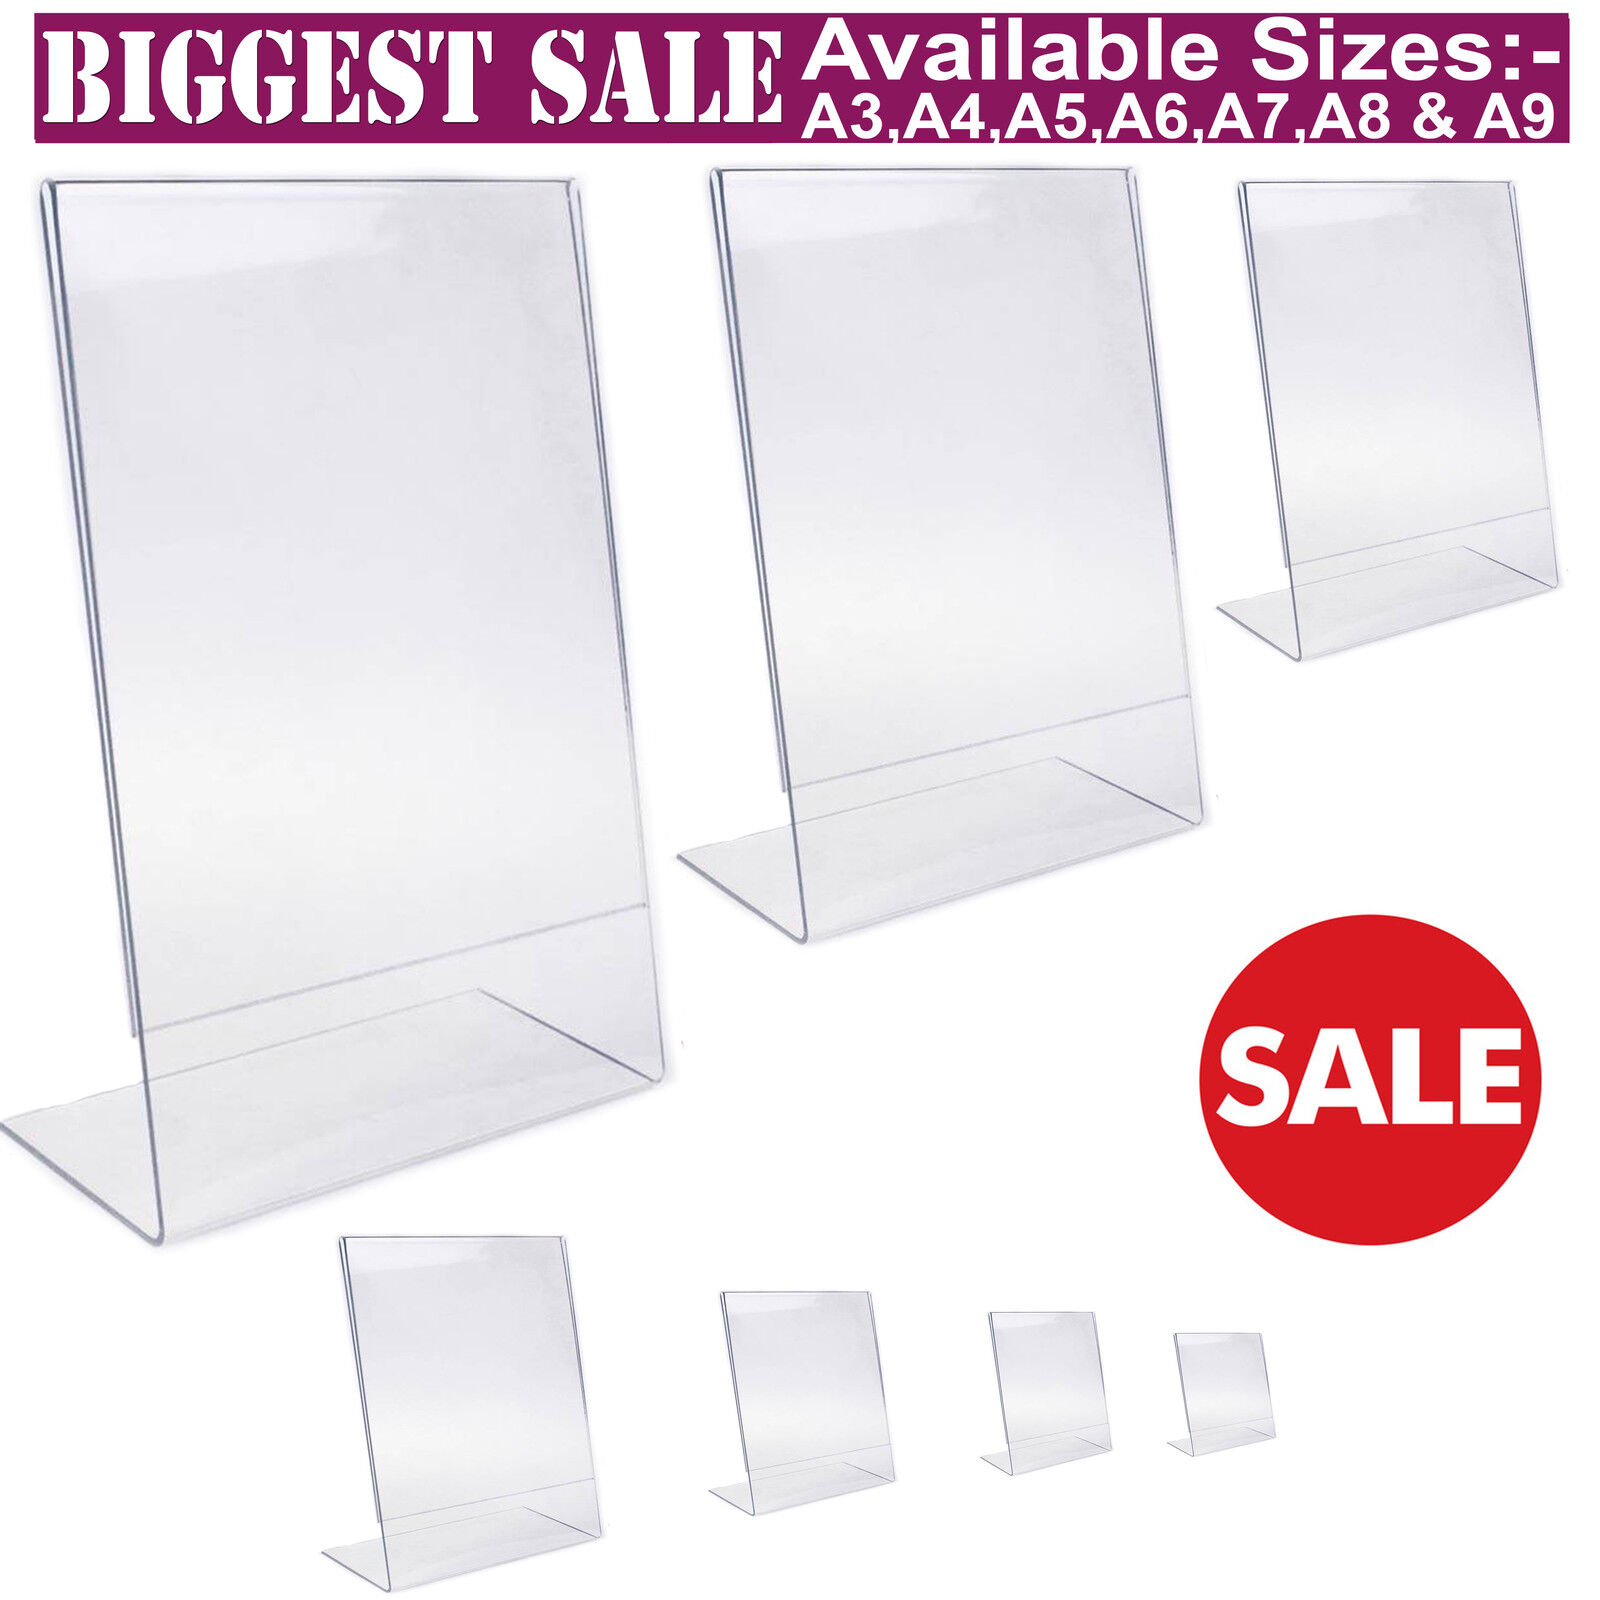 ... Holder Perspex Leaflet Display Stands A3 A4 A5 A6 A7 A8 & A9 | eBay